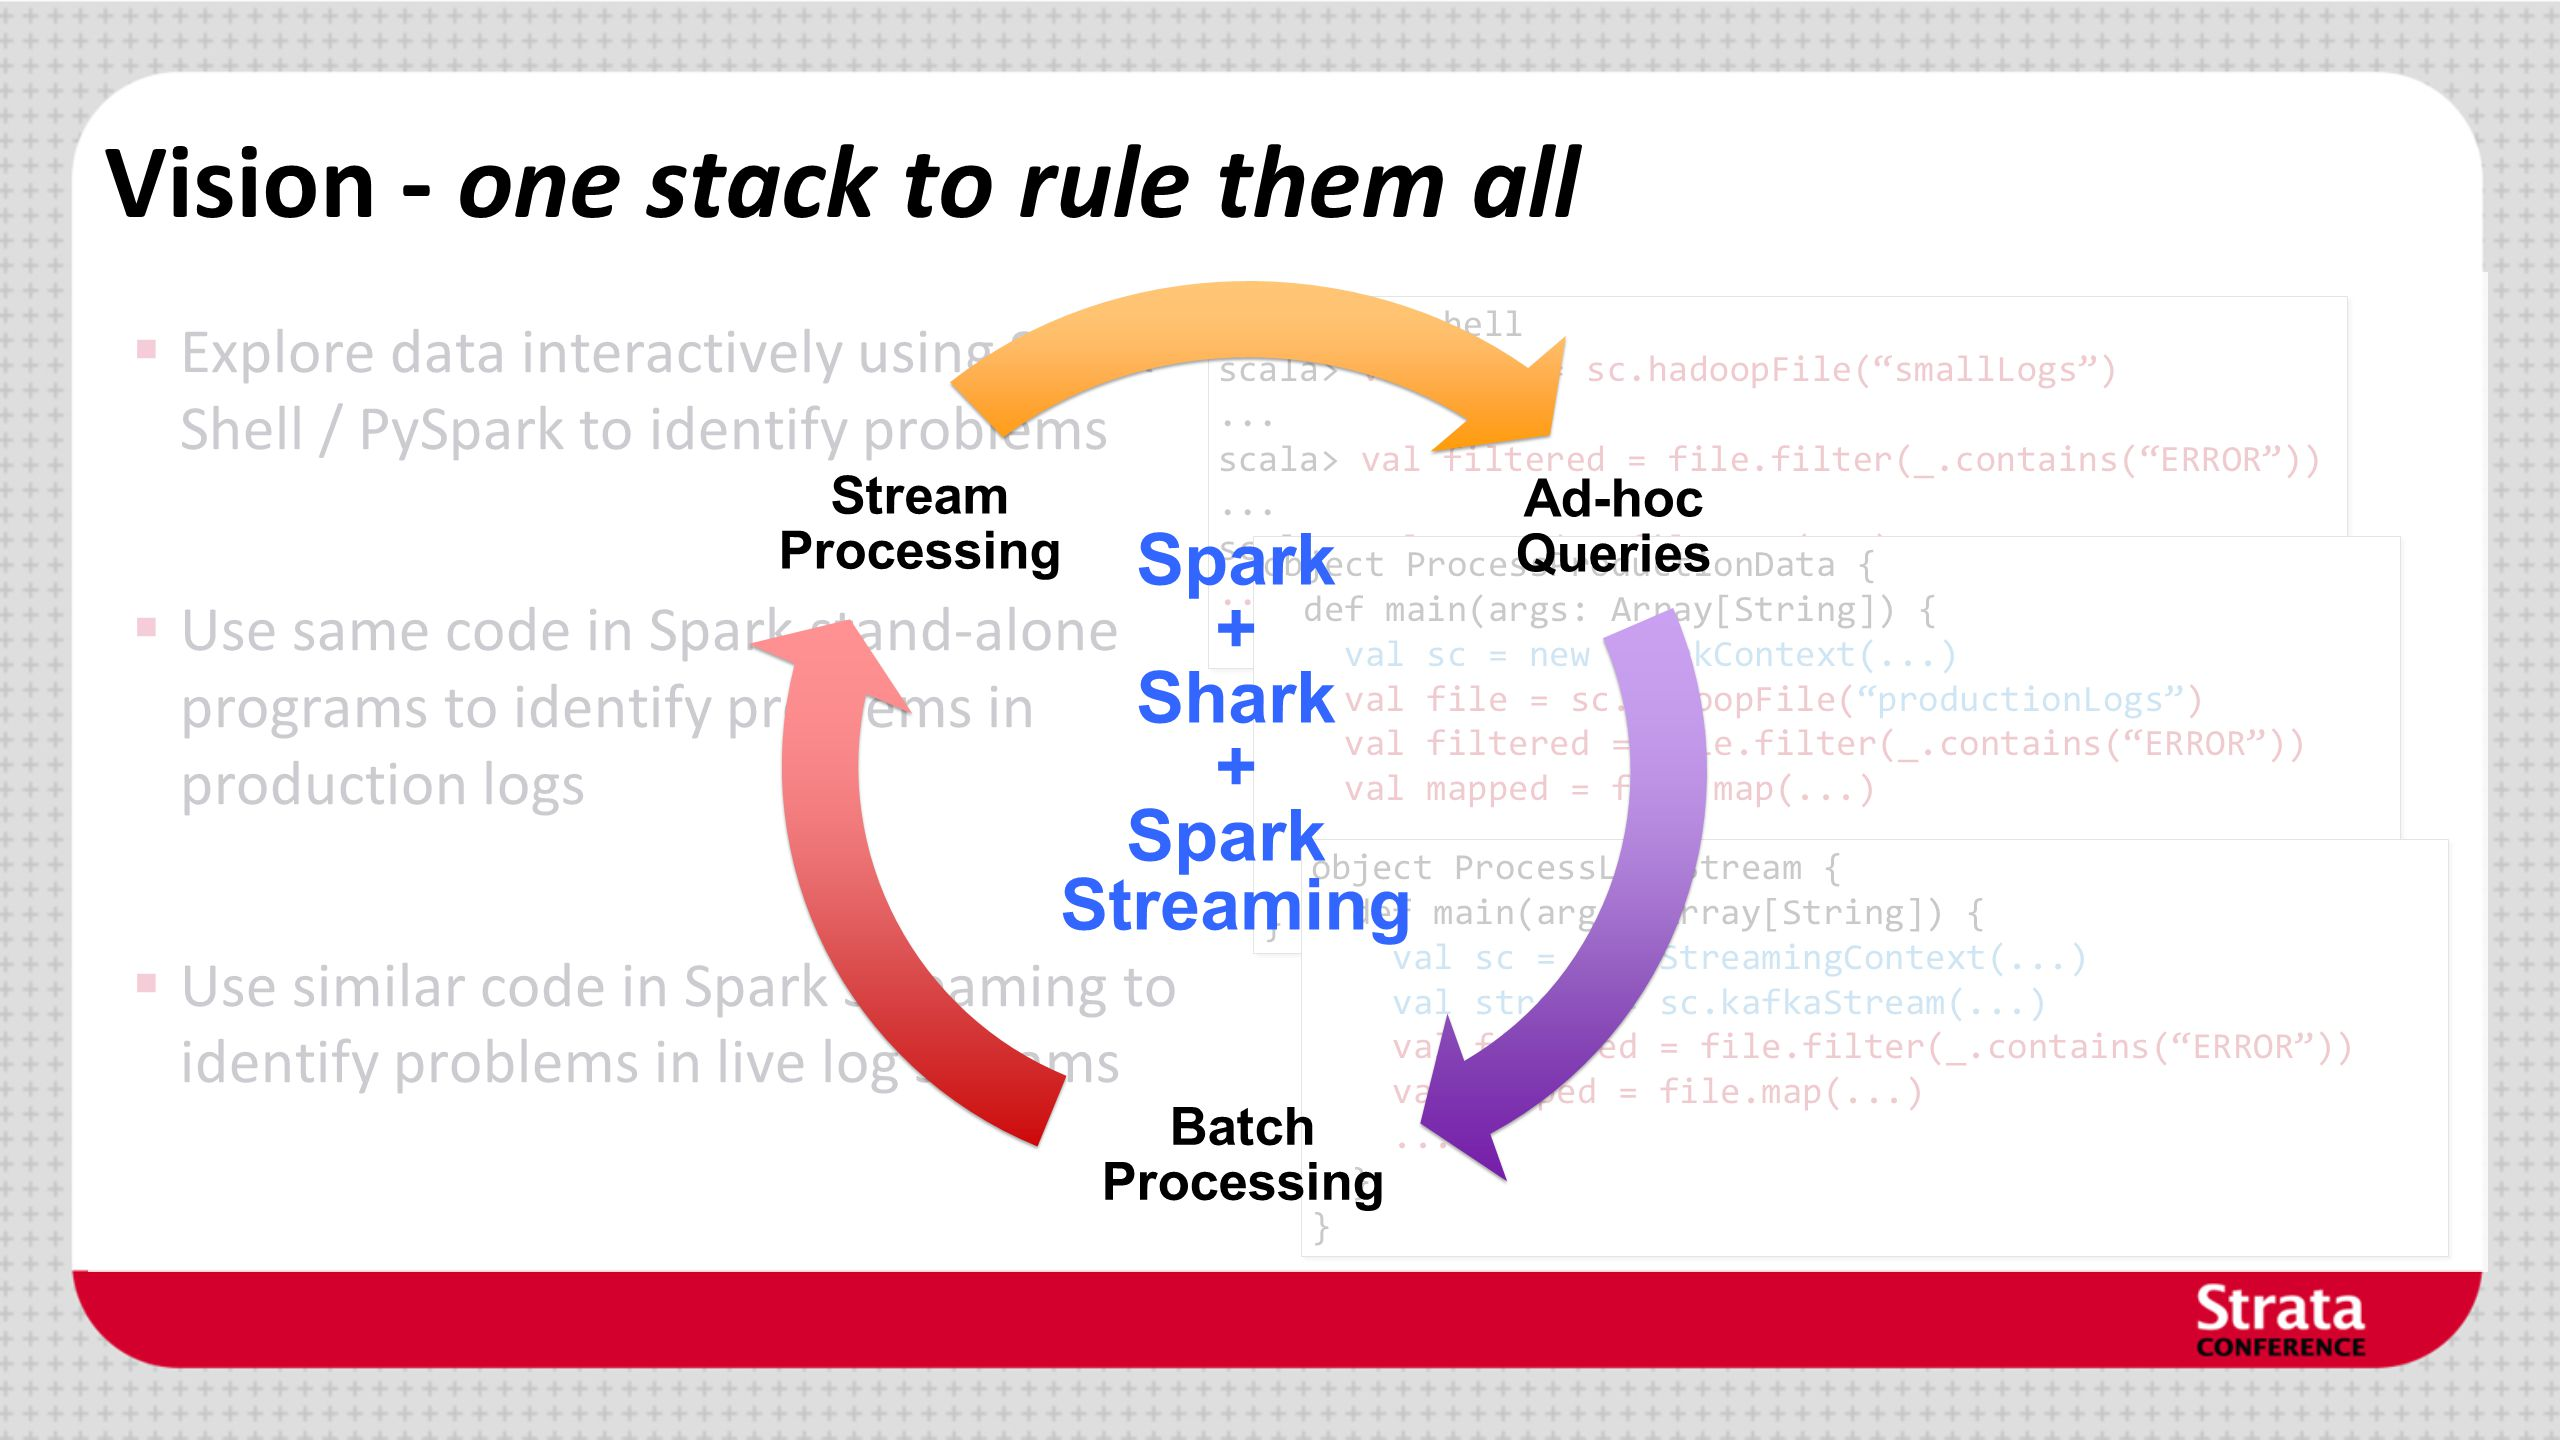 Vision - one stack to rule them all  Explore data interactively using Spark Shell / PySpark to identify problems  Use same code in Spark stand-alone programs to identify problems in production logs  Use similar code in Spark Streaming to identify problems in live log streams $./spark-shell scala> val file = sc.hadoopFile( smallLogs )...